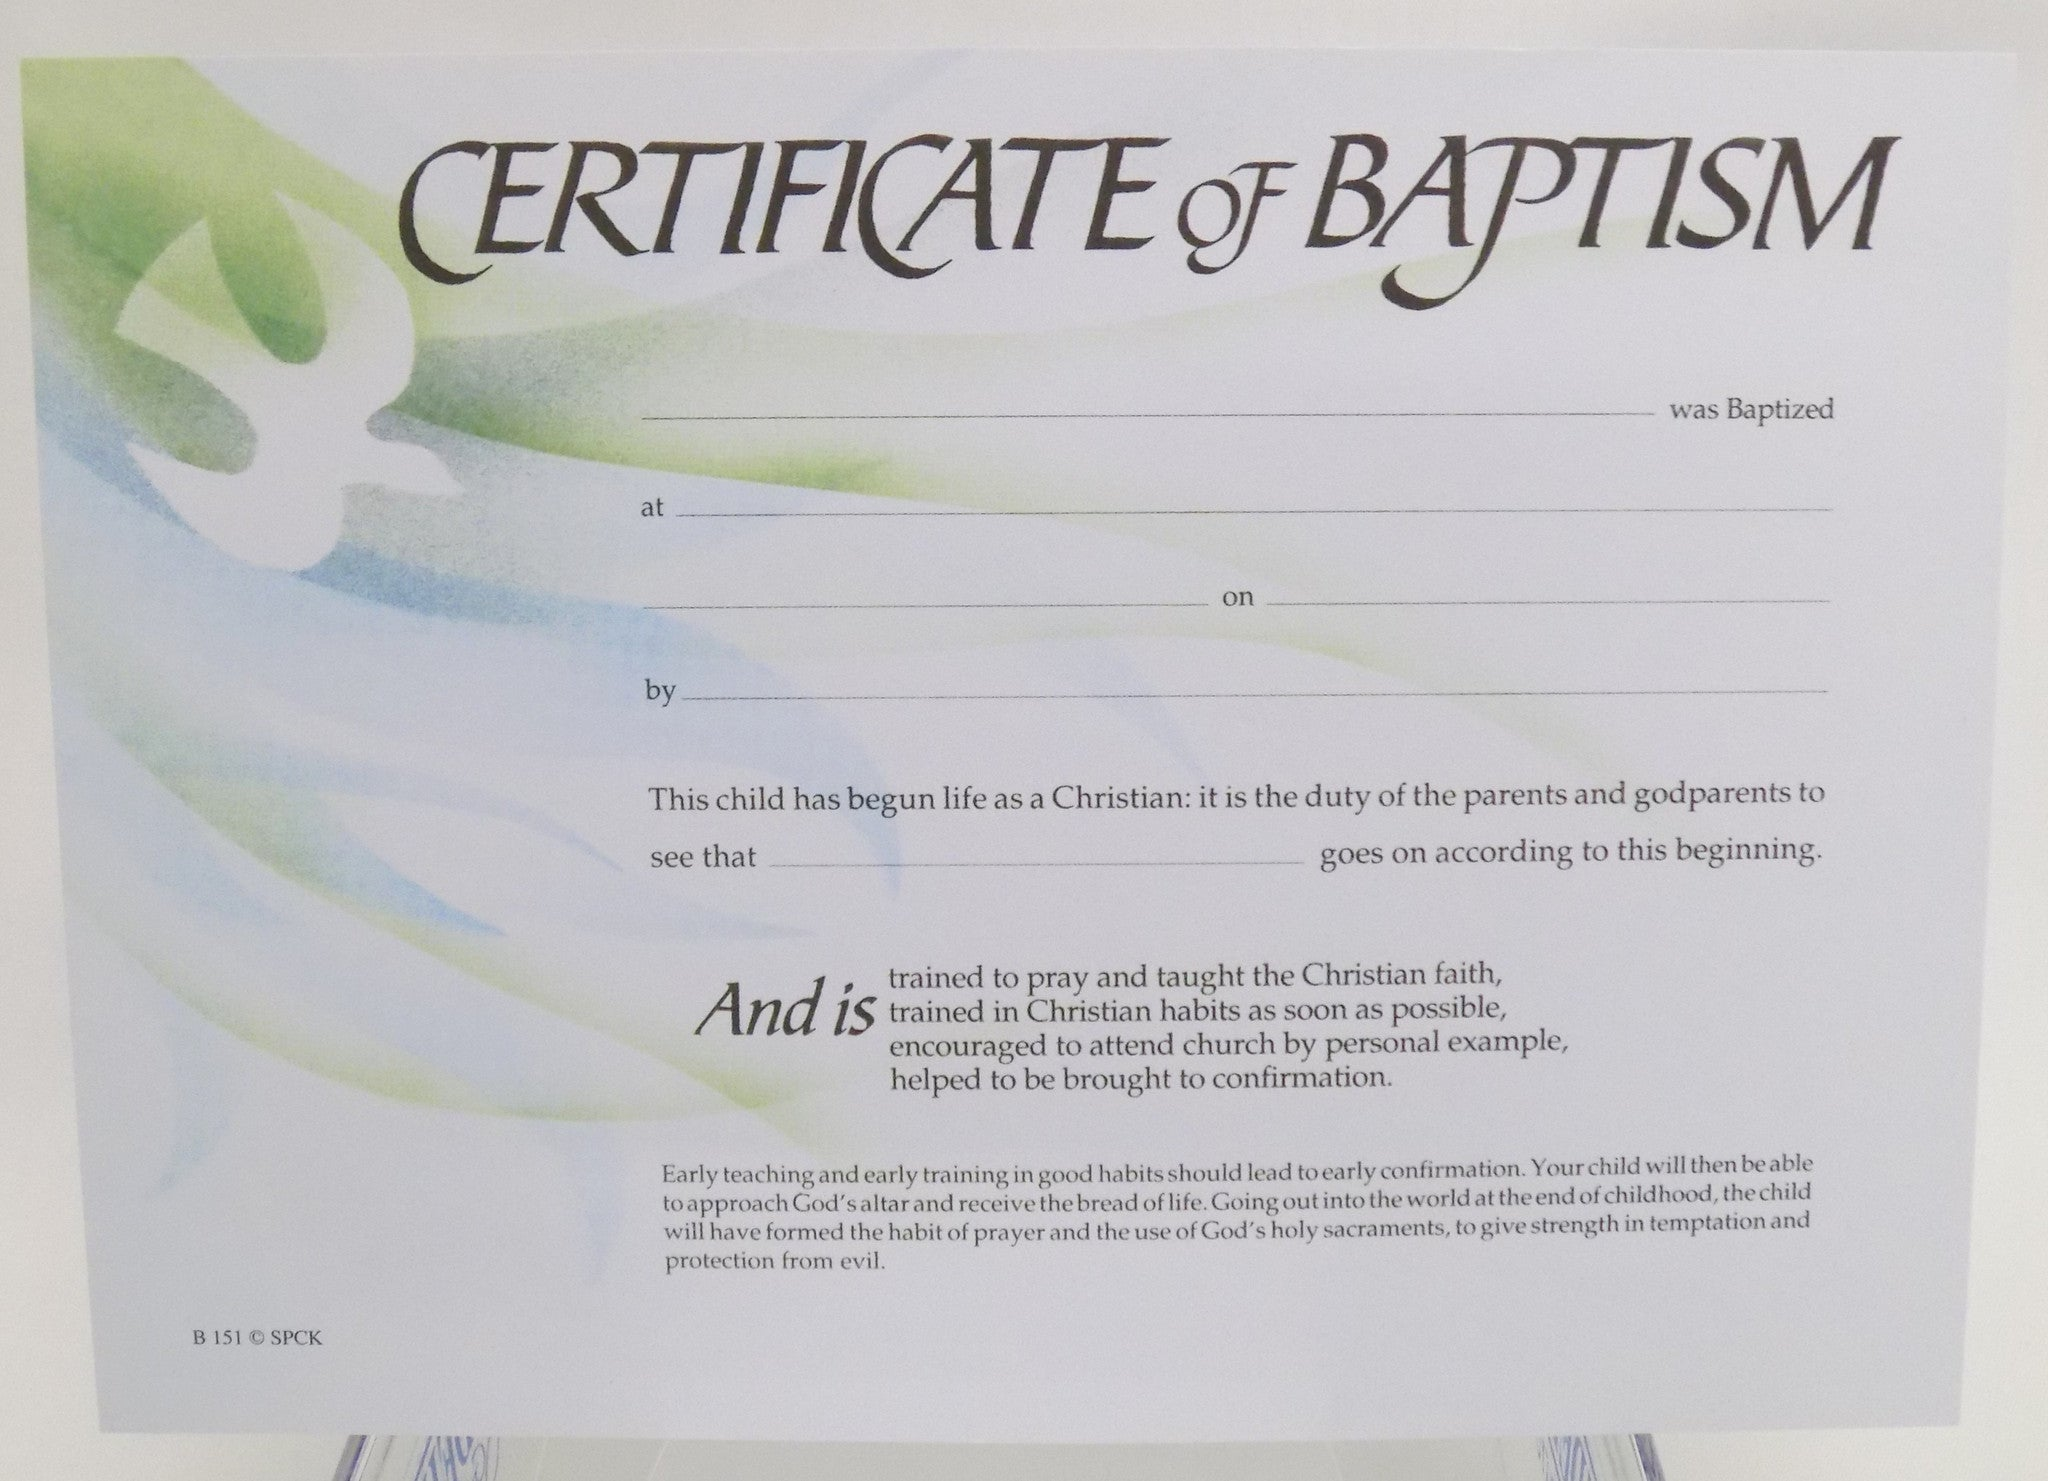 Baptism Certificate B151 Liverpool Cathedral